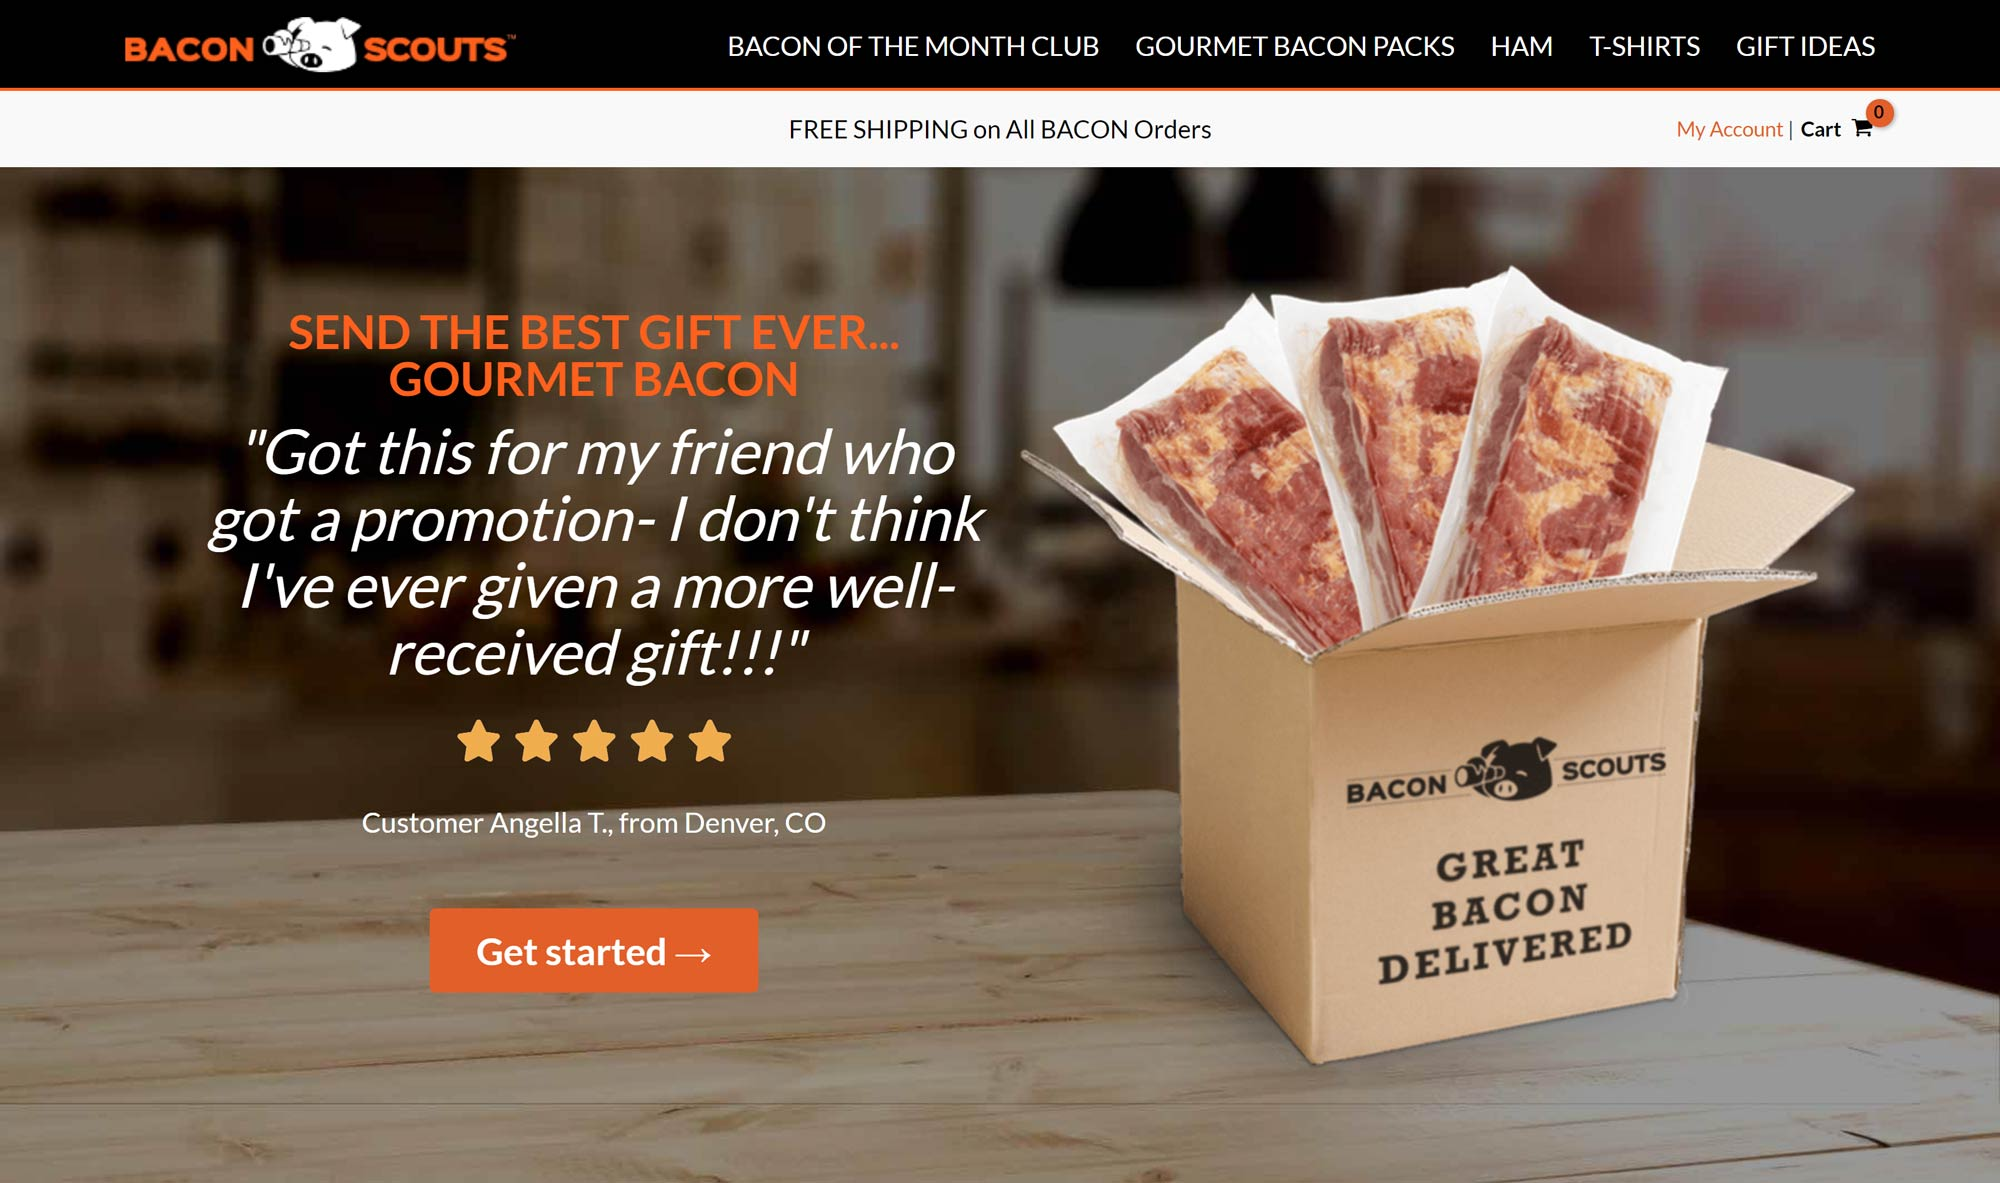 Bacon Scouts